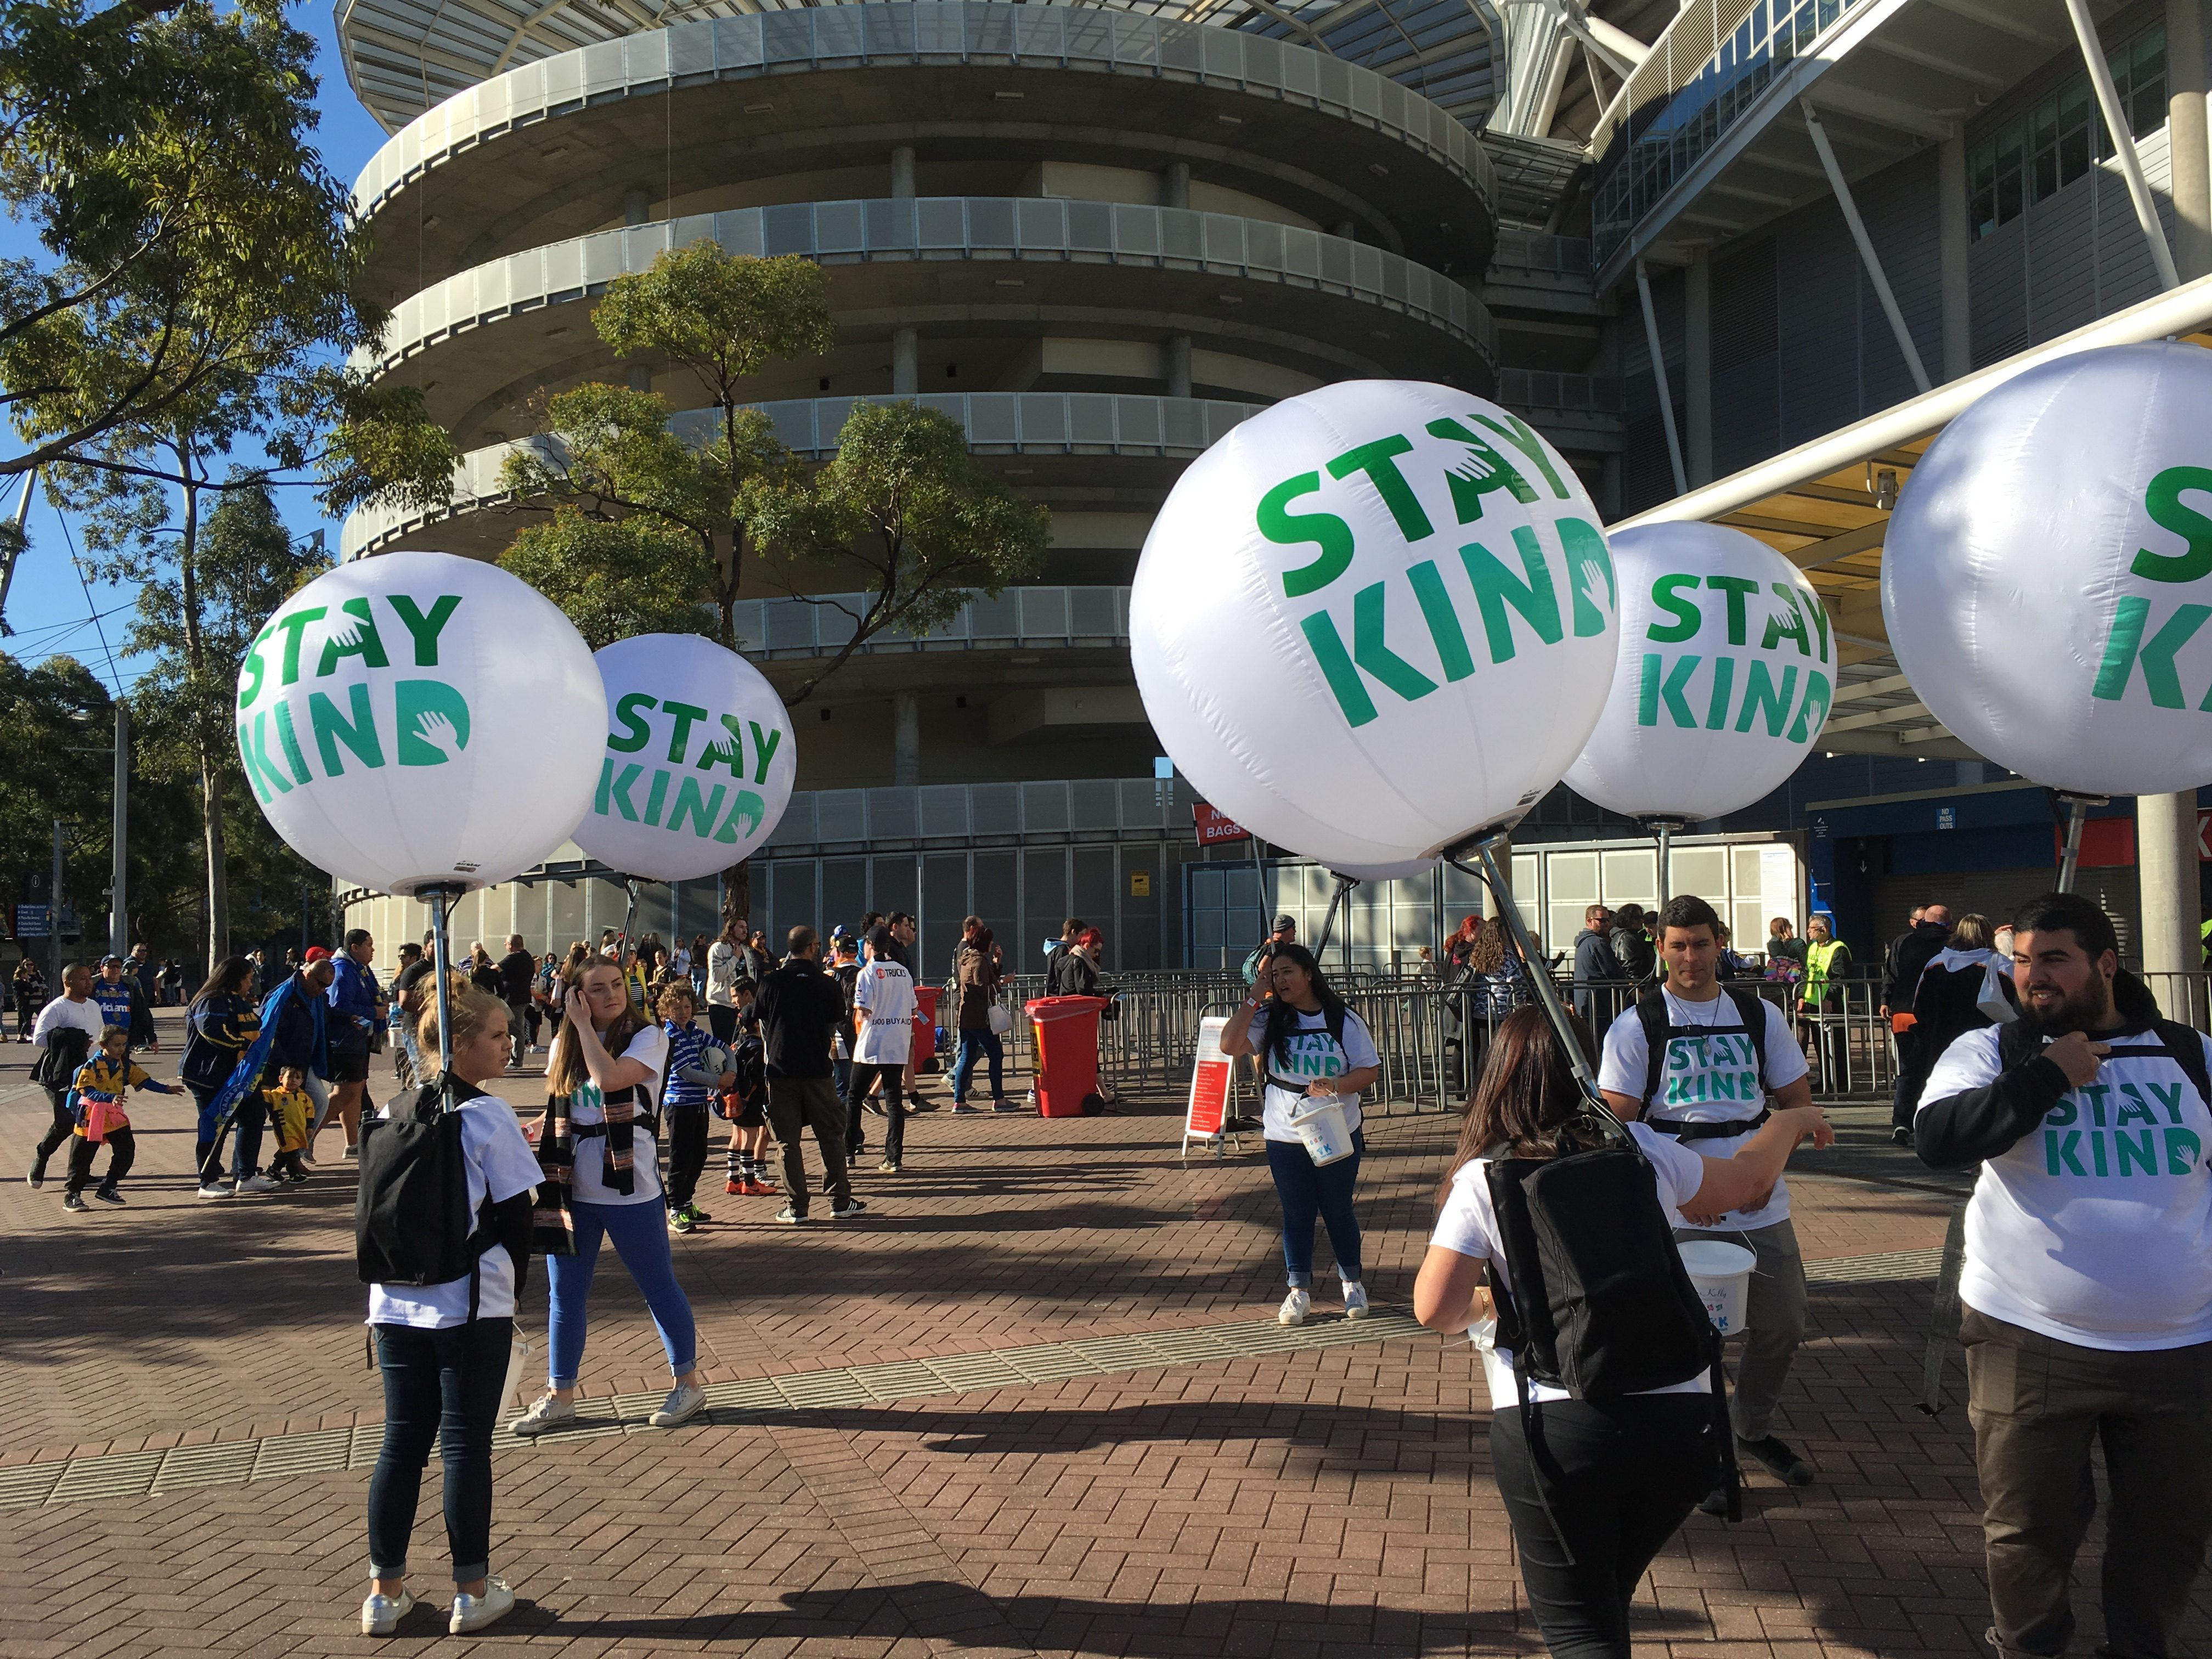 Stay Kind Day balloons